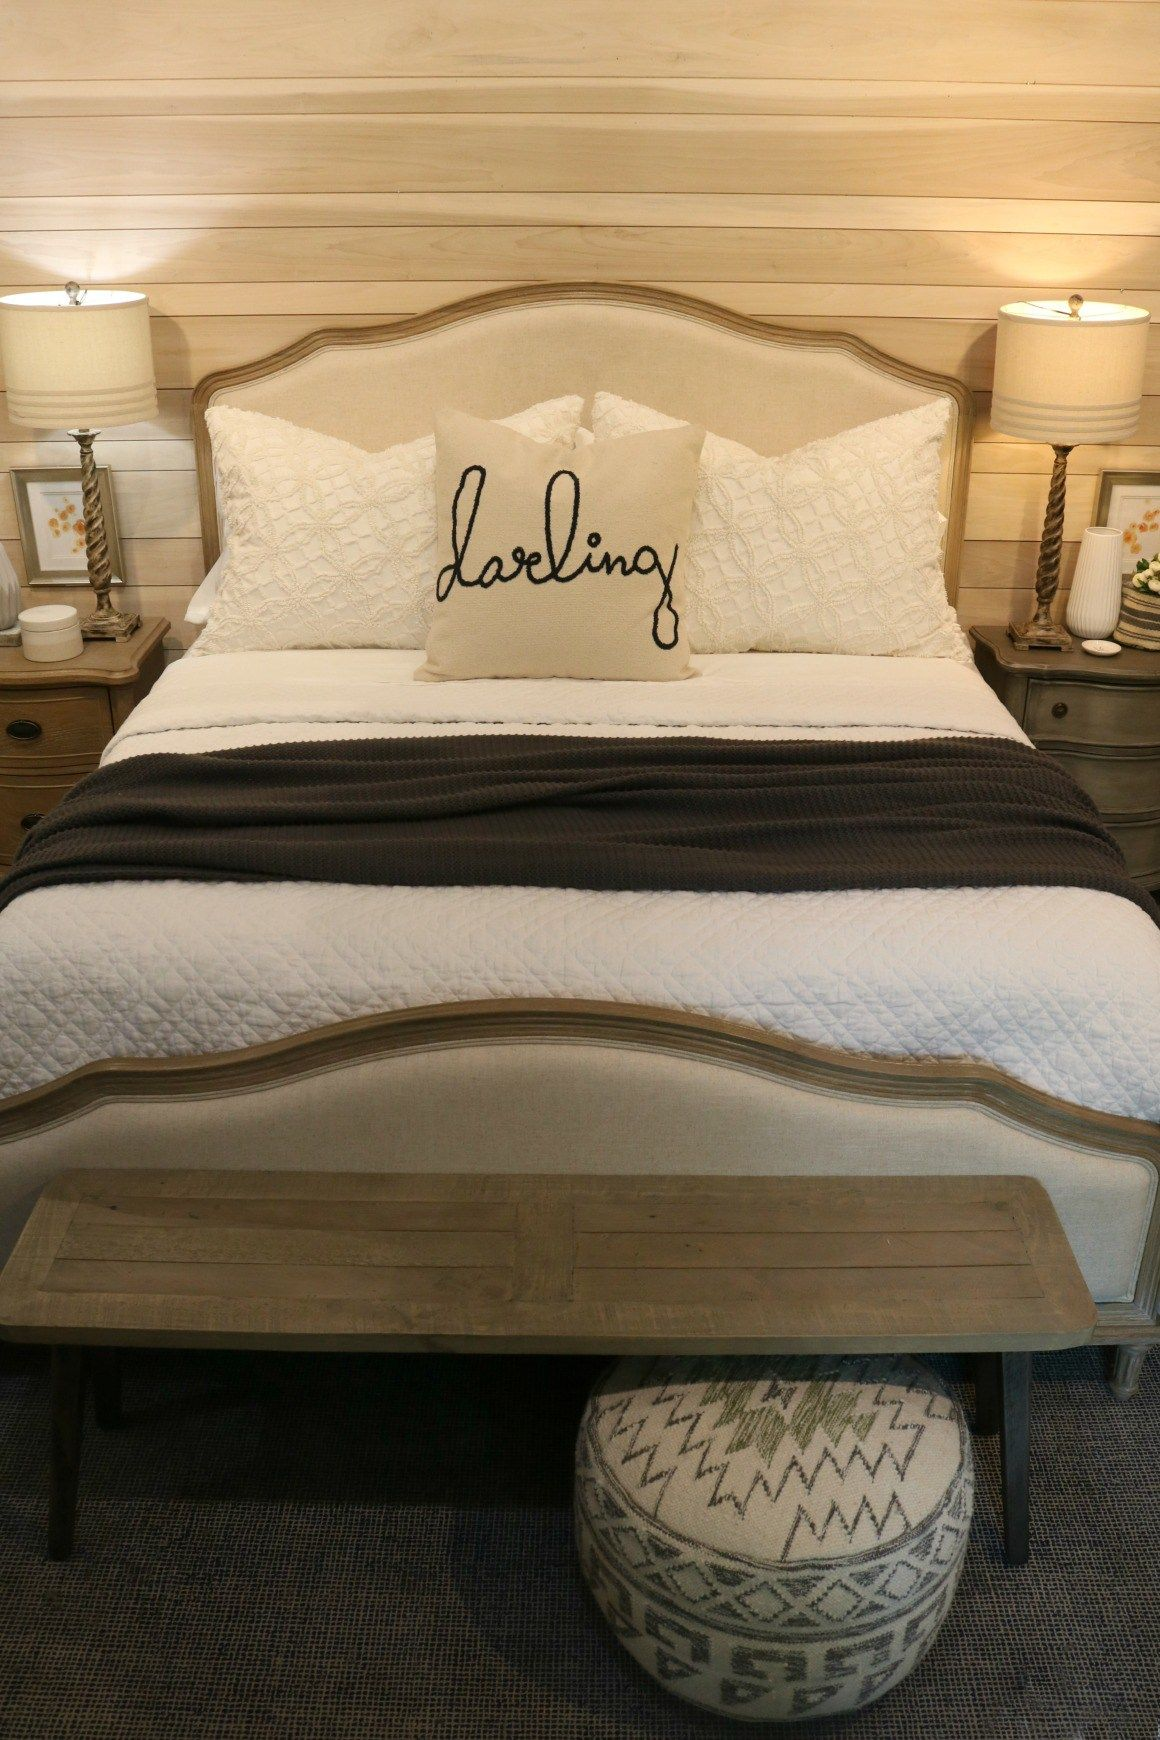 Stop Everything And Check Out The Bed That You'll Never Have To Leave